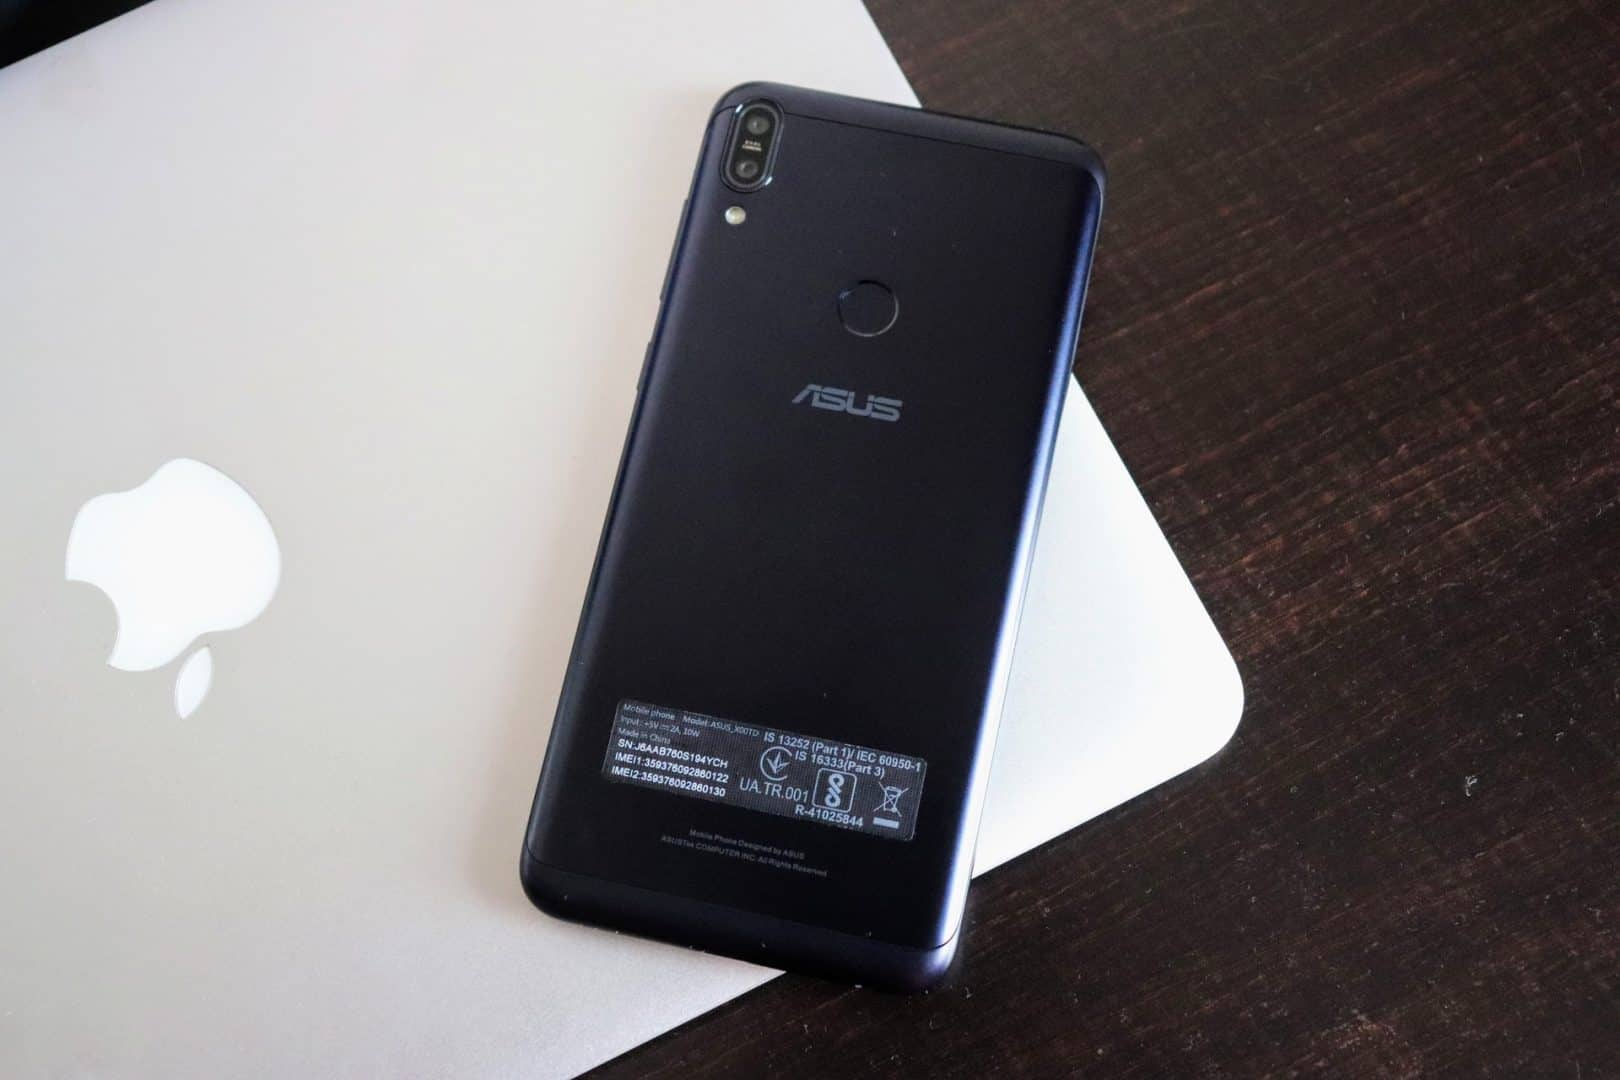 Zenfone Max Pro M1 6GB Hands-on & First Impressions - The Wait is Over! 😎 - 3